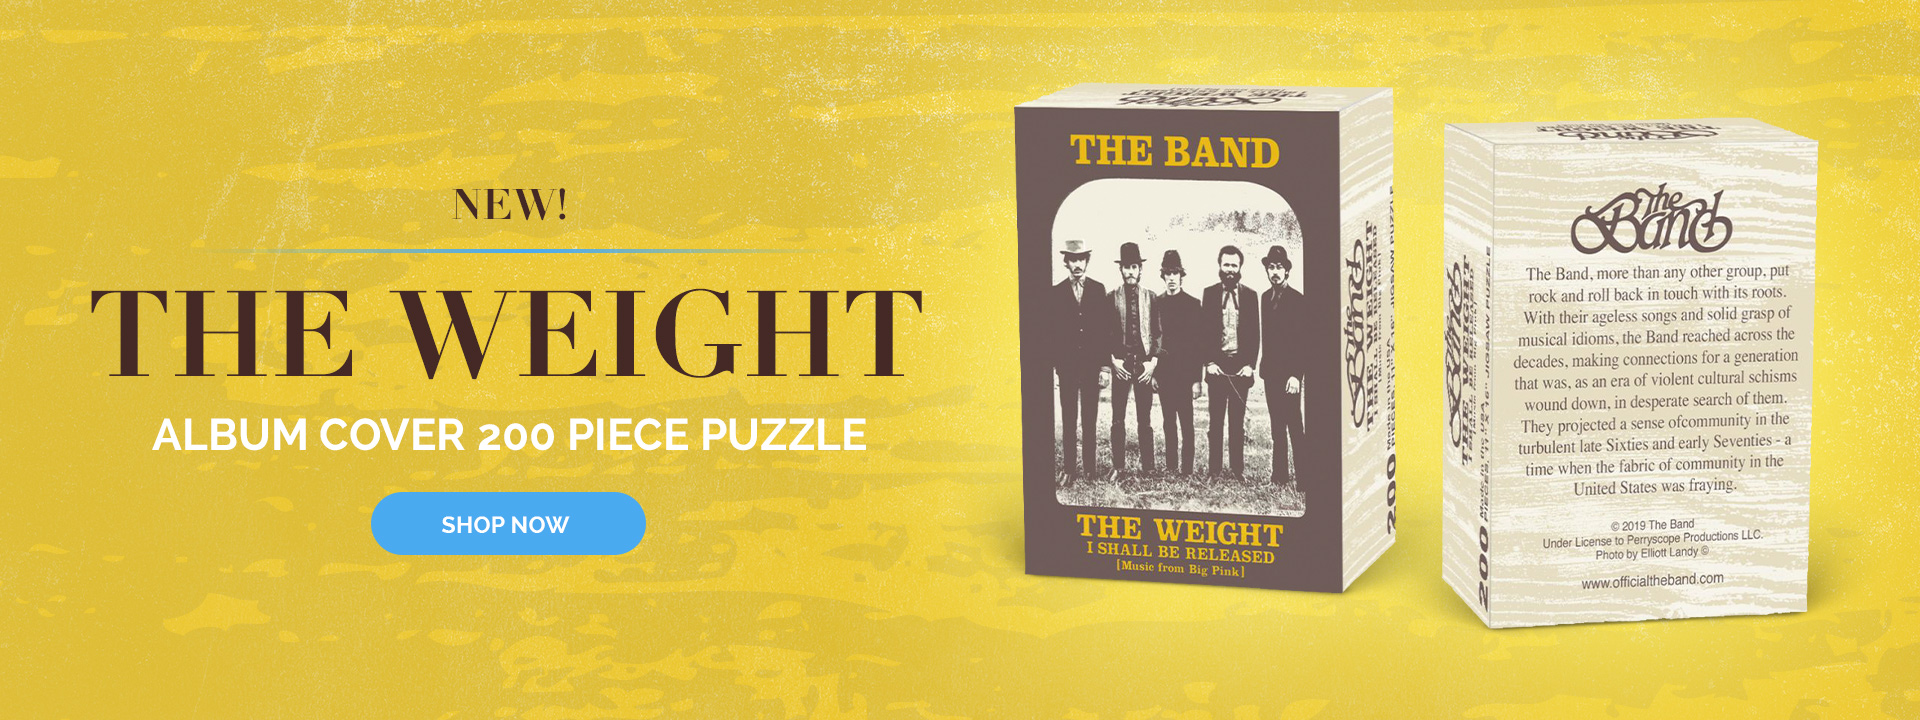 The Weight Album Cover Puzzle